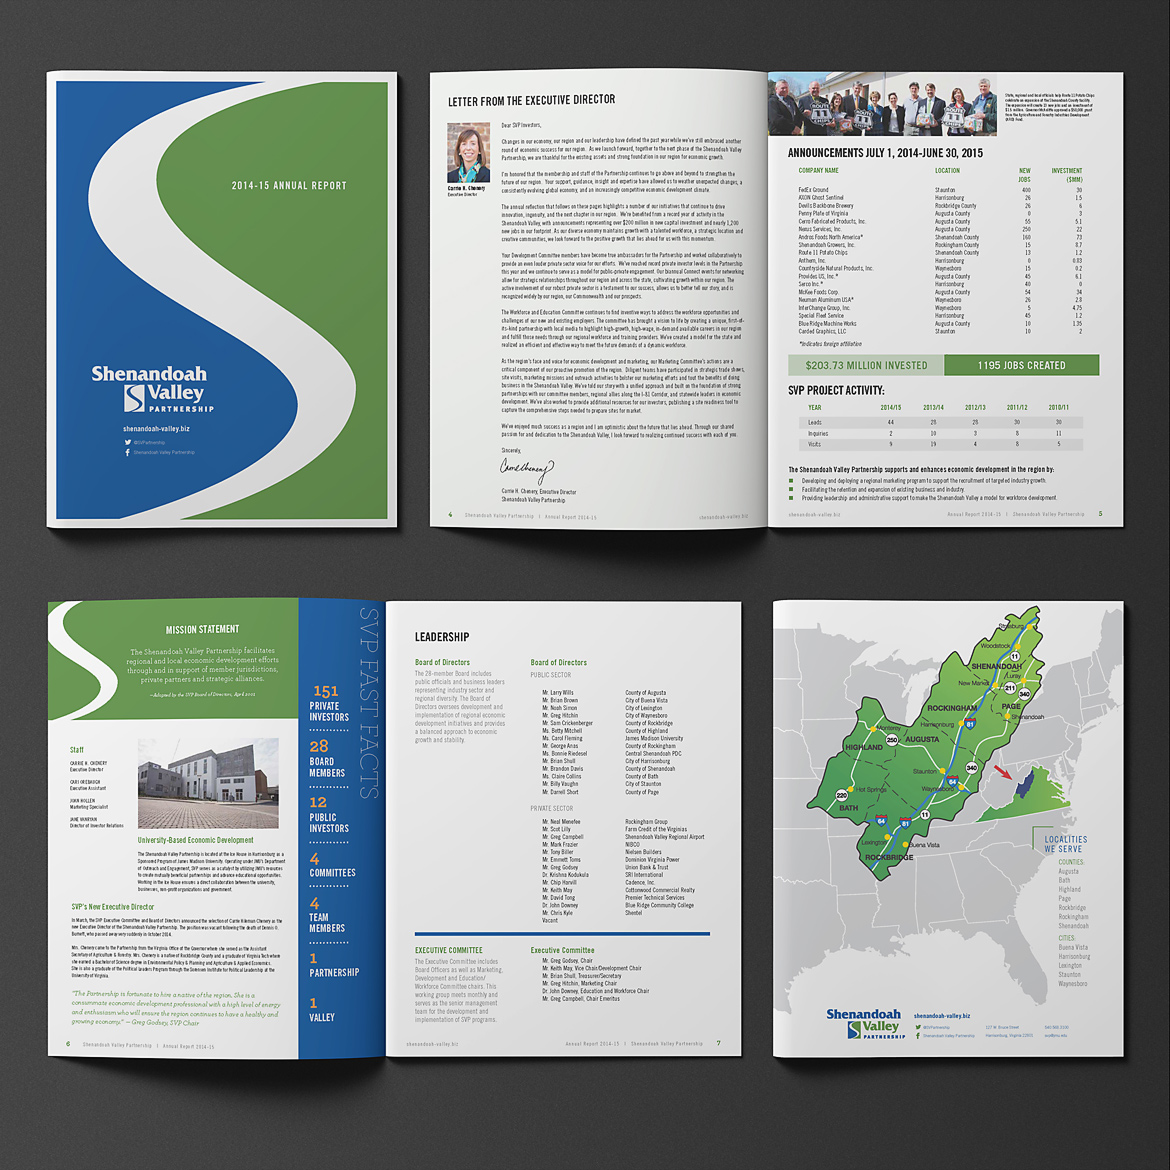 Annual Report, Signage, and Collateral-4